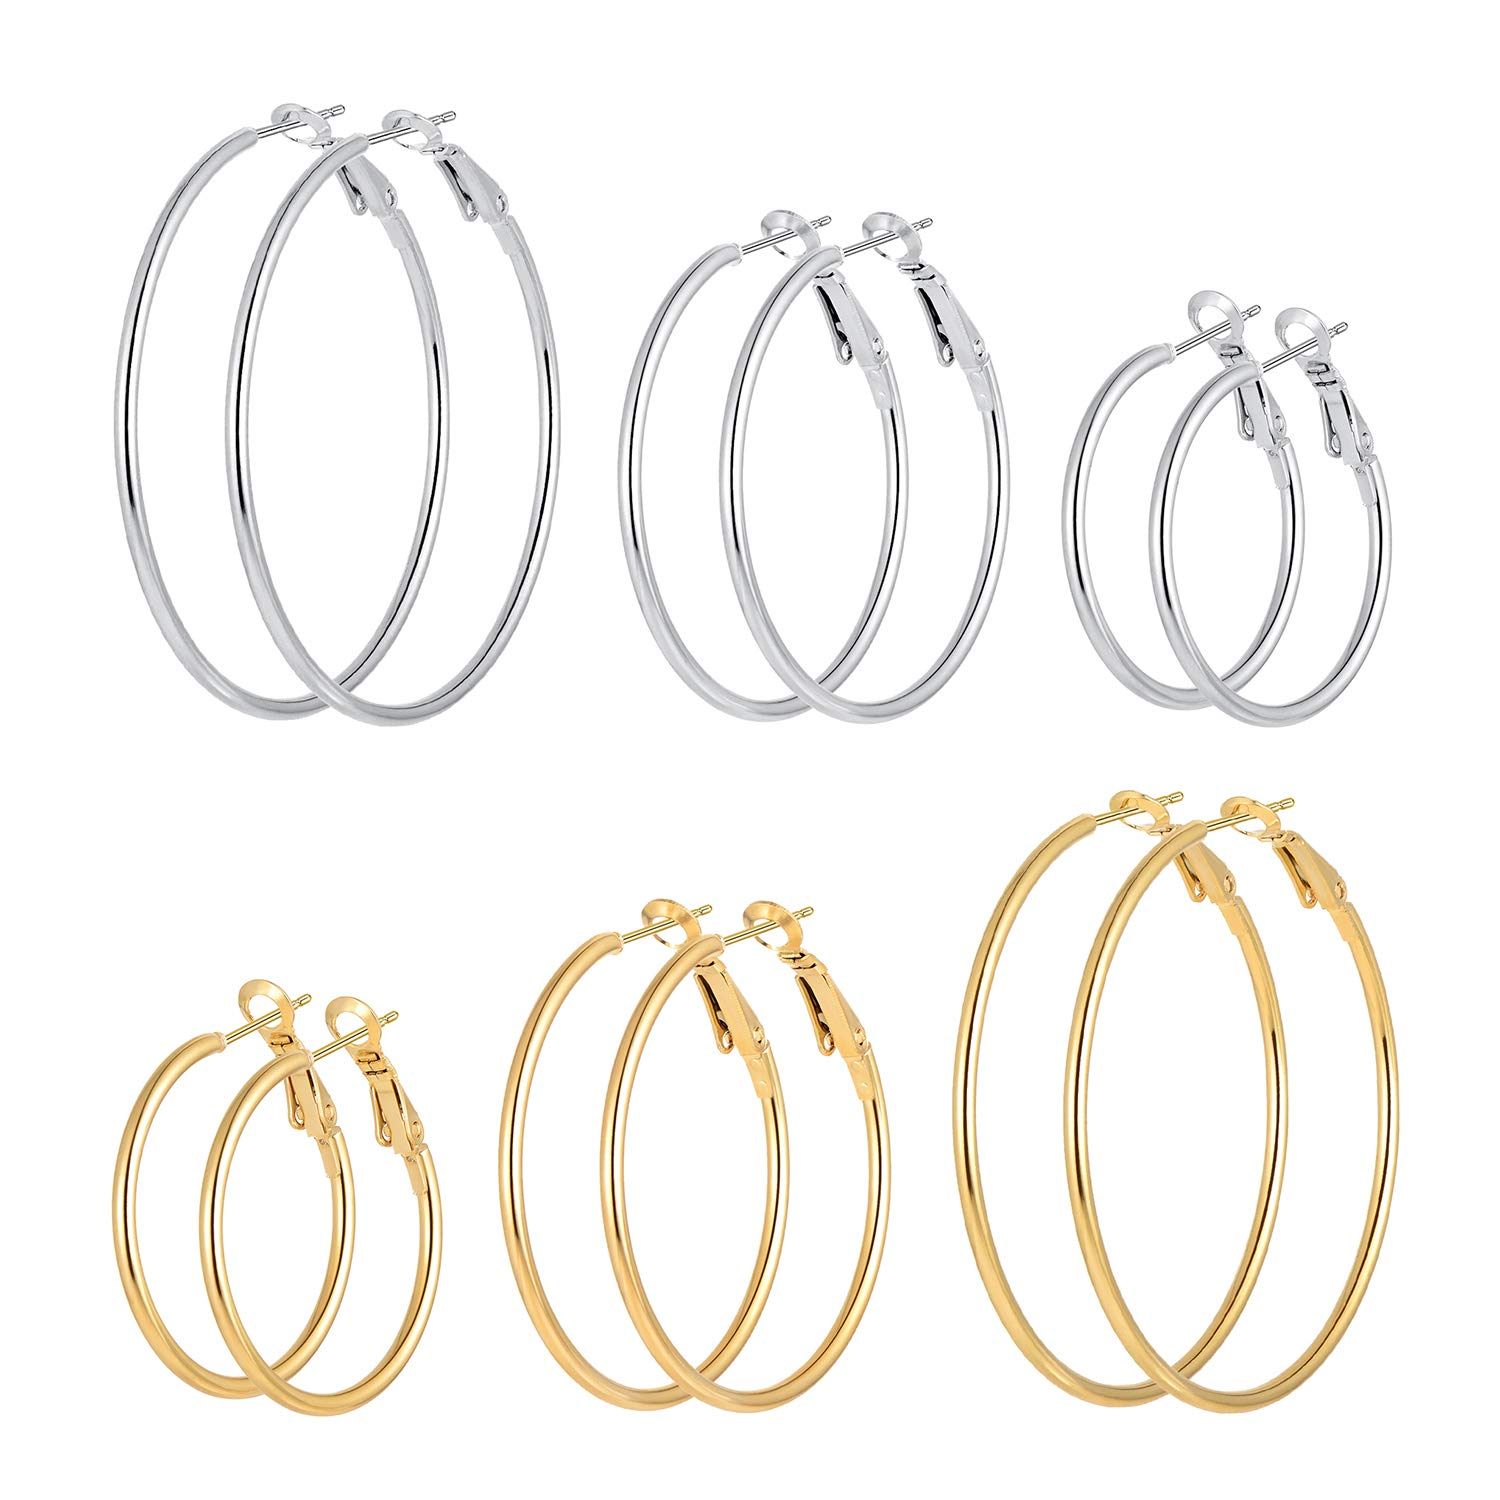 Cuicanstar 6 Pairs Stainless Steel Gold Silver Plated Hoop Earrings for Women Girls (30.40.50mm) by Cuicanstar